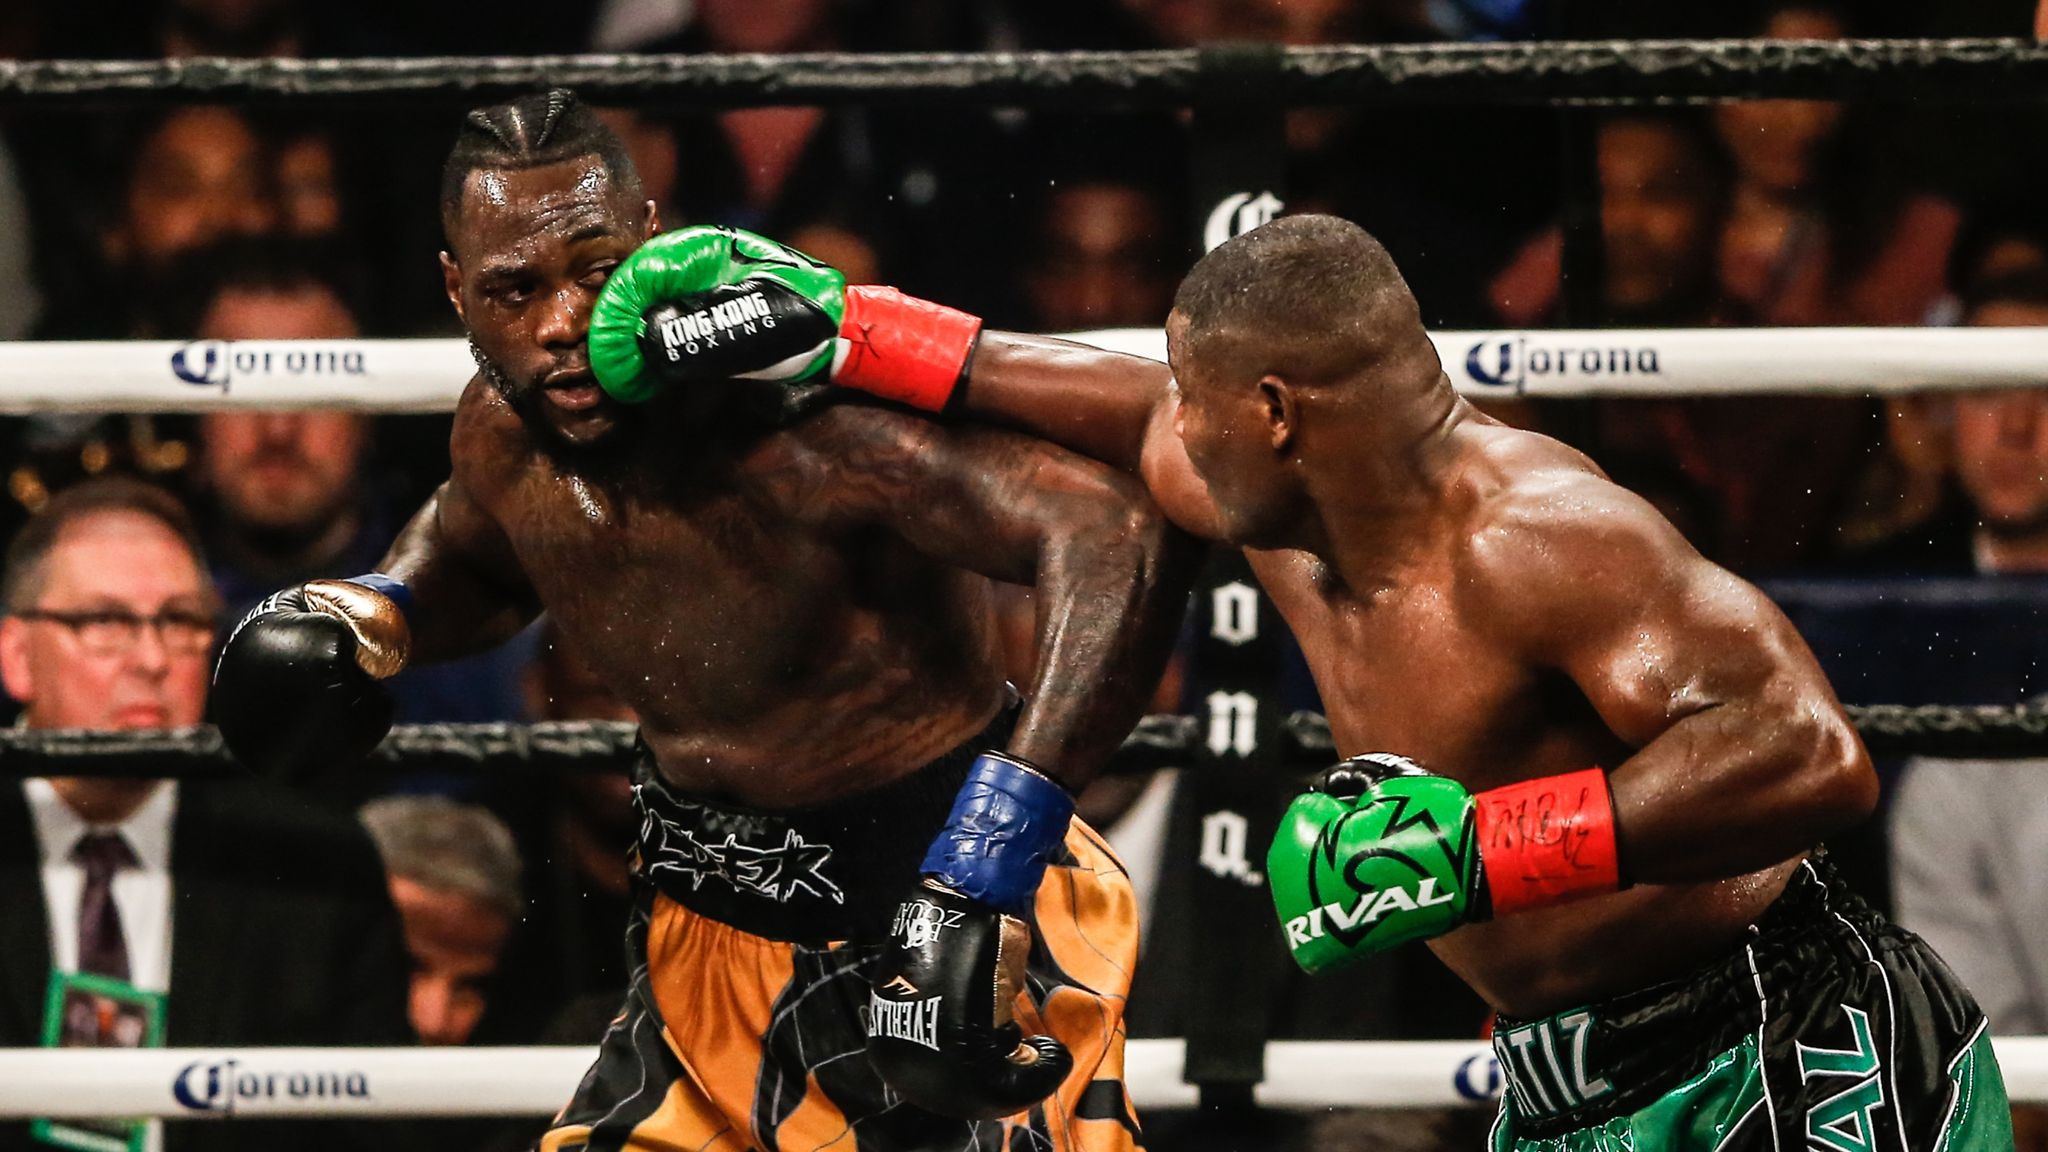 Deontay Wilder, Anthony Joshua and the game of thrones